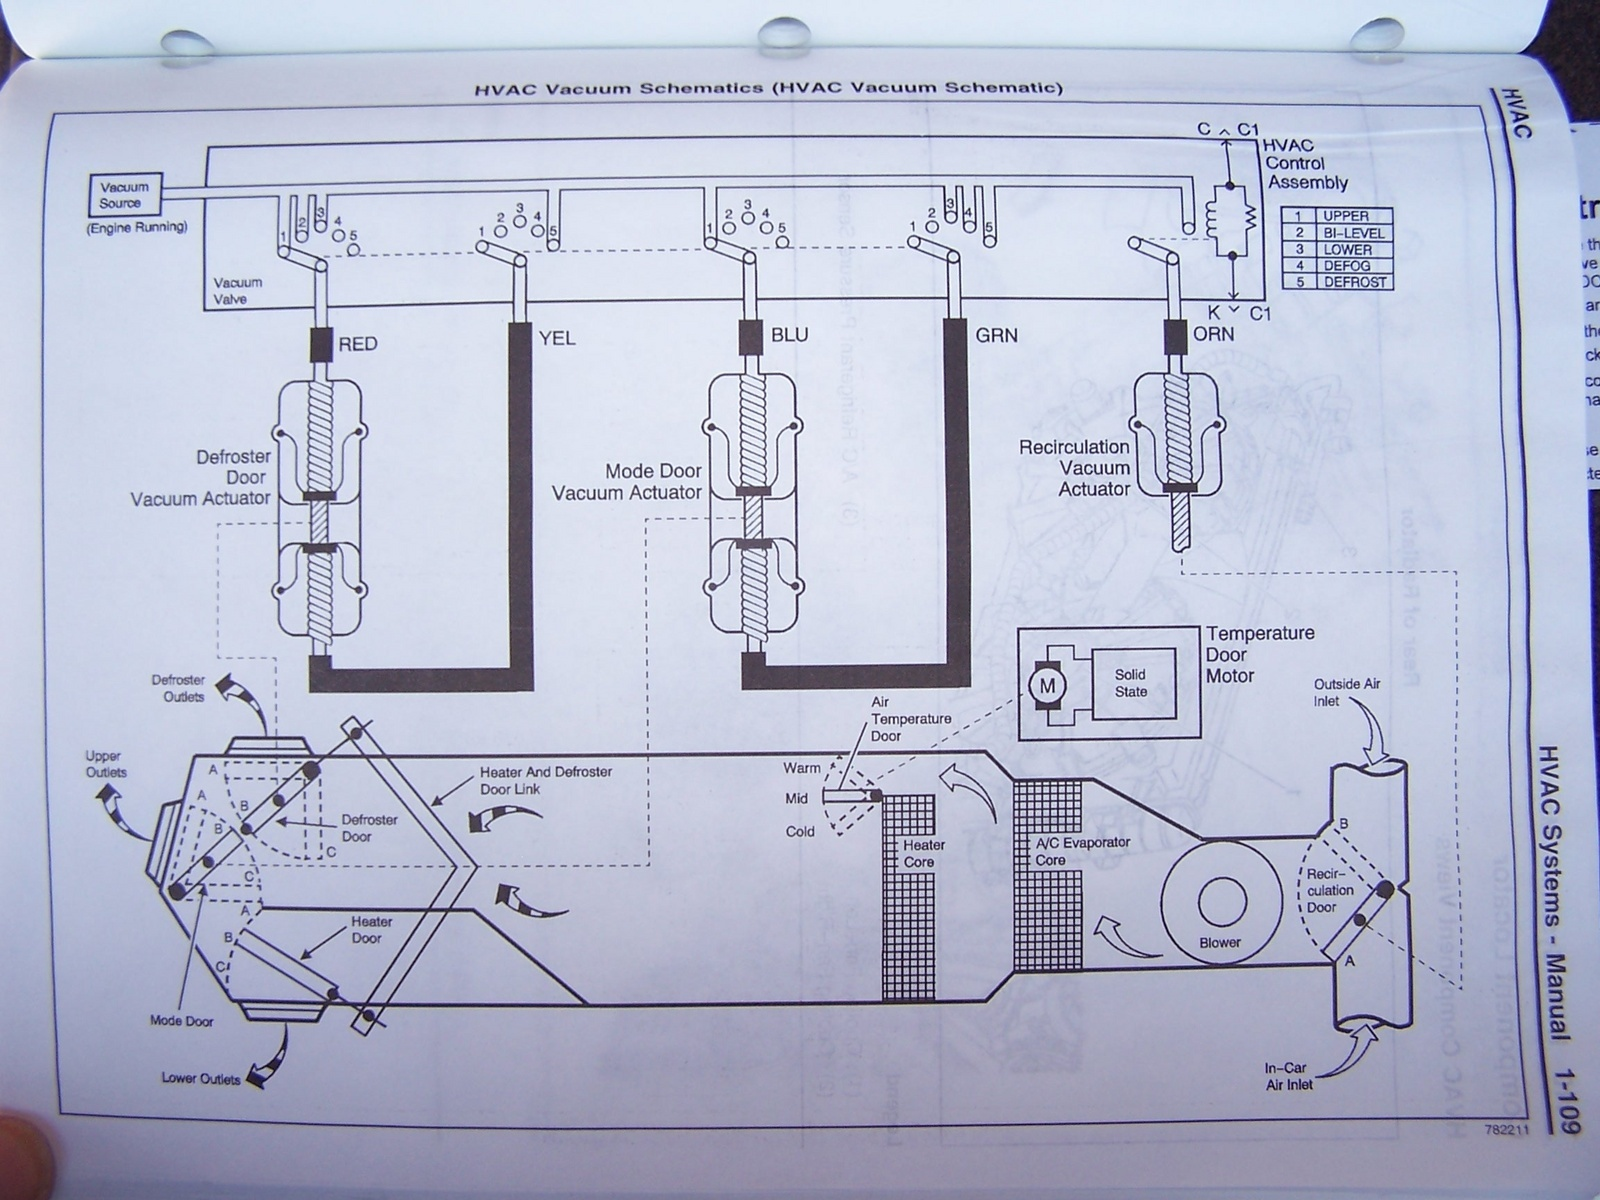 89 Gmc Suburban Wiring Diagram | Wiring Diagram  K Blazer Wiring Diagram on 89 celebrity wiring diagram, 78 gmc wiring diagram, 89 mustang wiring diagram, 89 camaro wiring diagram, 89 suburban wiring diagram, 97 suburban wiring diagram, maf 2000 blazer diagram, 89 corvette wiring diagram, 2004 taurus wiring diagram, 89 s10 wiring diagram, 89 k1500 wiring diagram, 89 cavalier wiring diagram, 2003 chevy impala wiring diagram, s10 fuse box diagram,